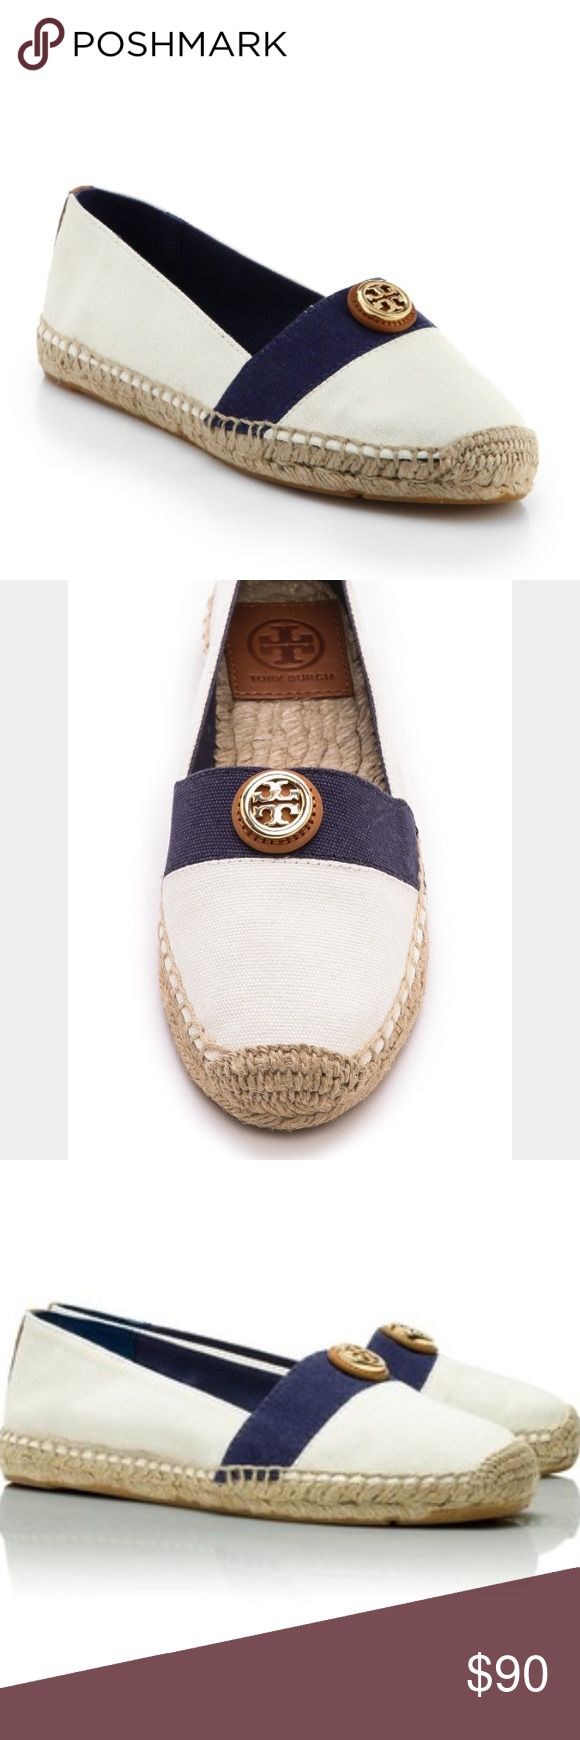 Tory Burch beacher flat espadrilles Condition: brand new. Box/no box: no box  Brand: Tory Burch. Size: 6 (please know your Tory Burch size before purchasing). Name: Beacher. Color: ivory, navy, tan. Style: espadrilles. Material: canvas.  The combination of white and blue on the upper is finished with tan-hued leather trims at back and top for a luxe touch. Team yours with airy cotton skirt or pants.  Textile upper. Textile lining. Jute insole. Rubber sole. Signature gold logo on top. Round…